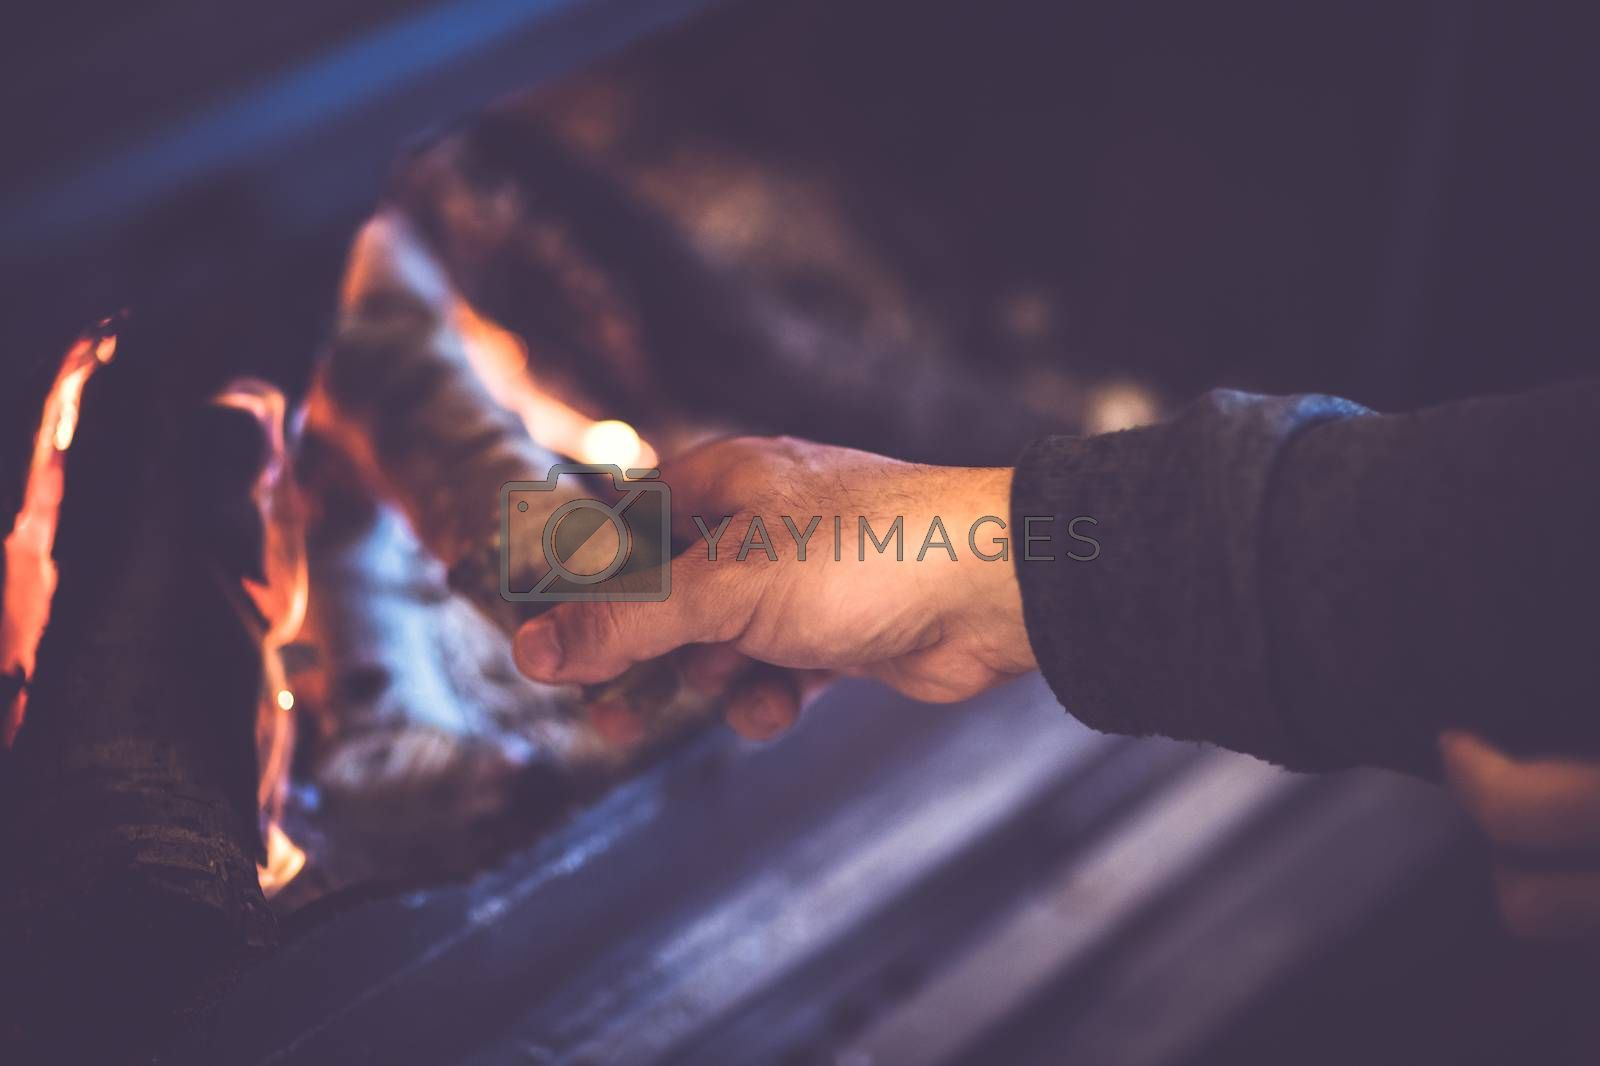 Man kindles a fireplace, closeup photo of a men's hand throws firewood into the fire, romantic winter time evening near fireside in the country house